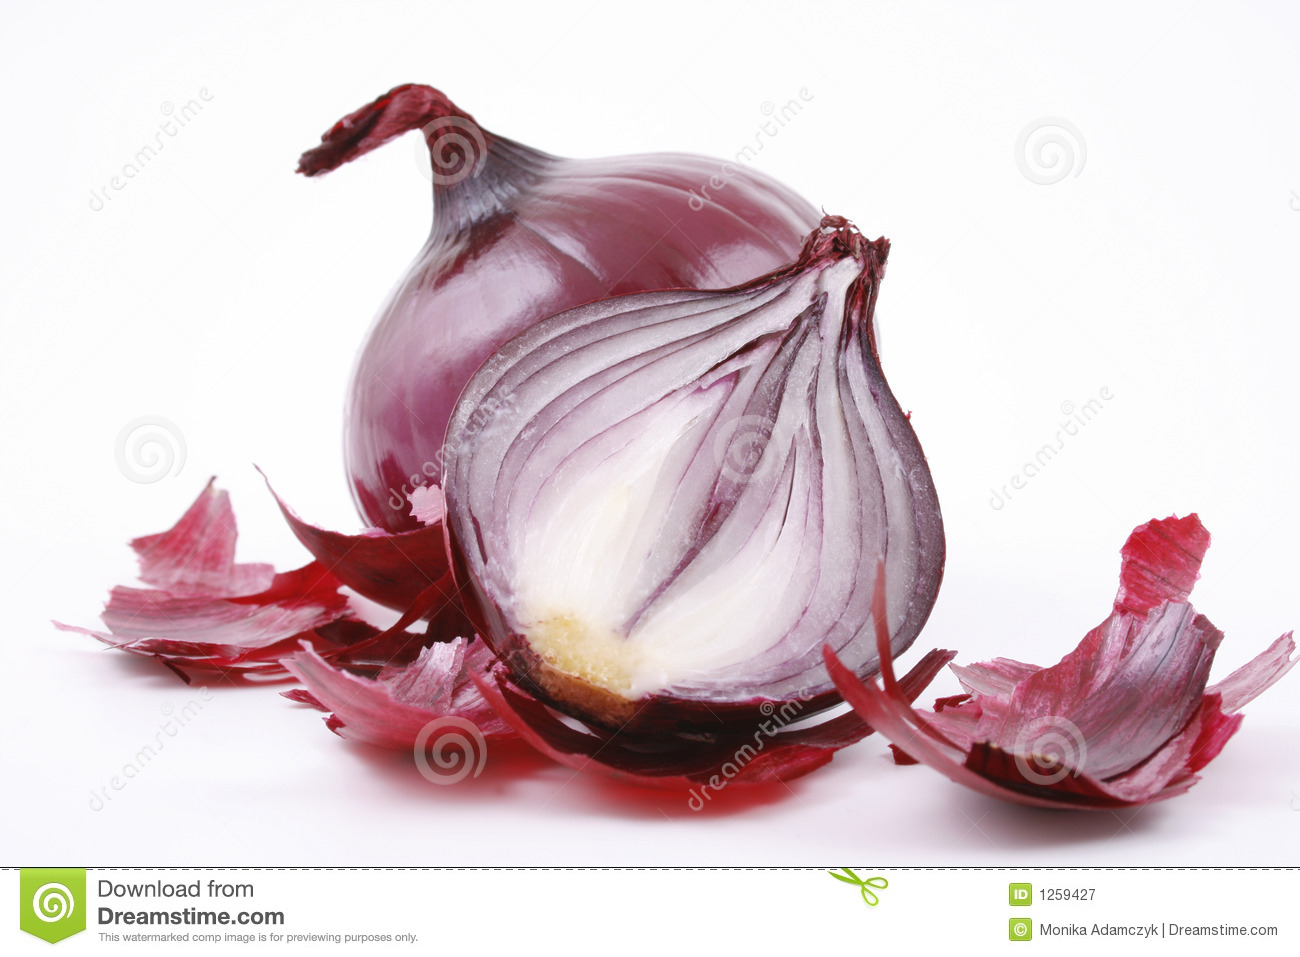 Red Onion Royalty Free Stock Photography - Image: 1259427: www.dreamstime.com/royalty-free-stock-photography-red-onion...